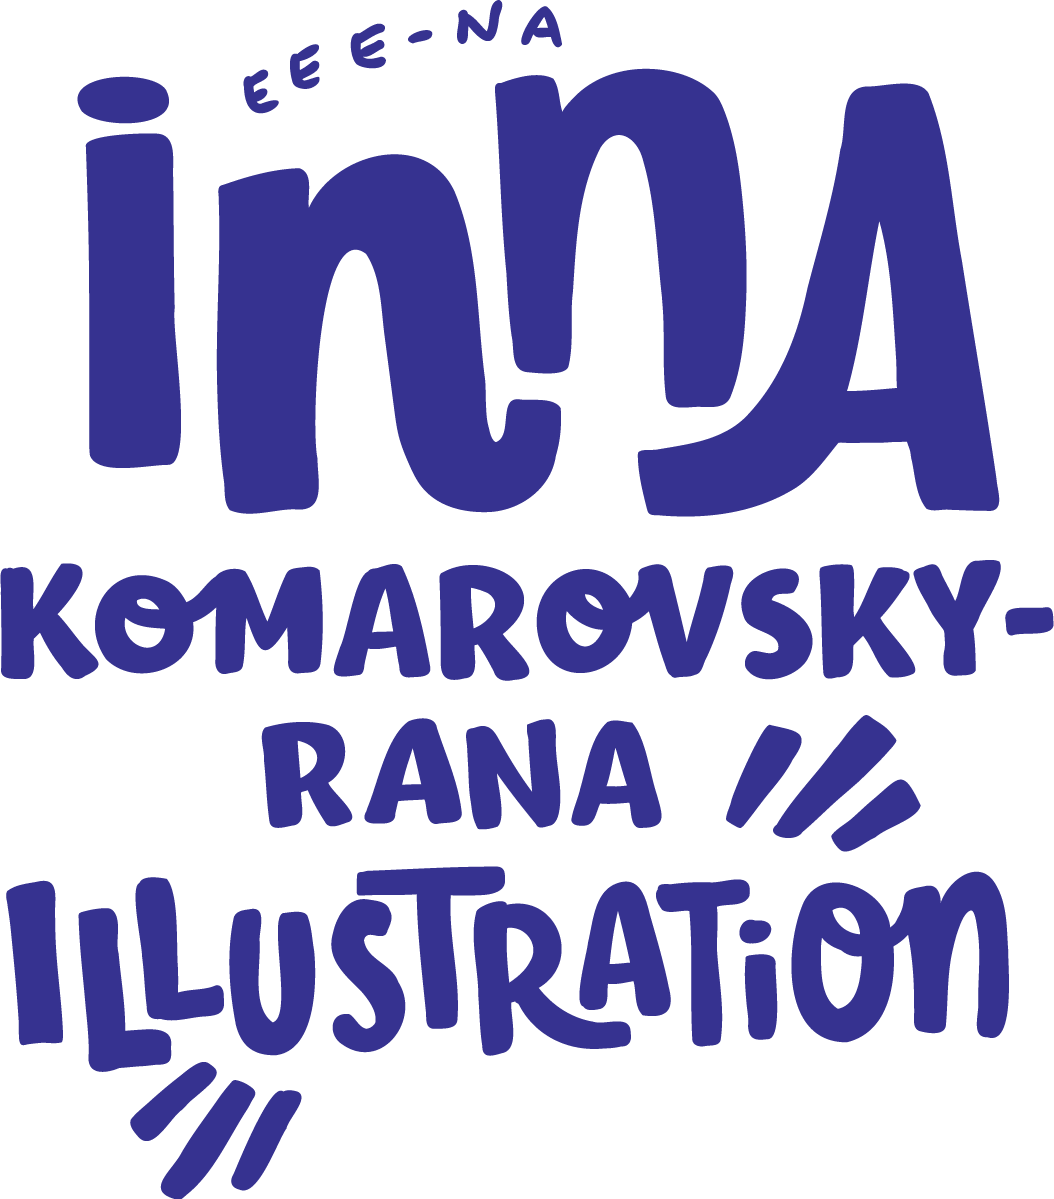 Inna Komarovsky-Rana Illustration